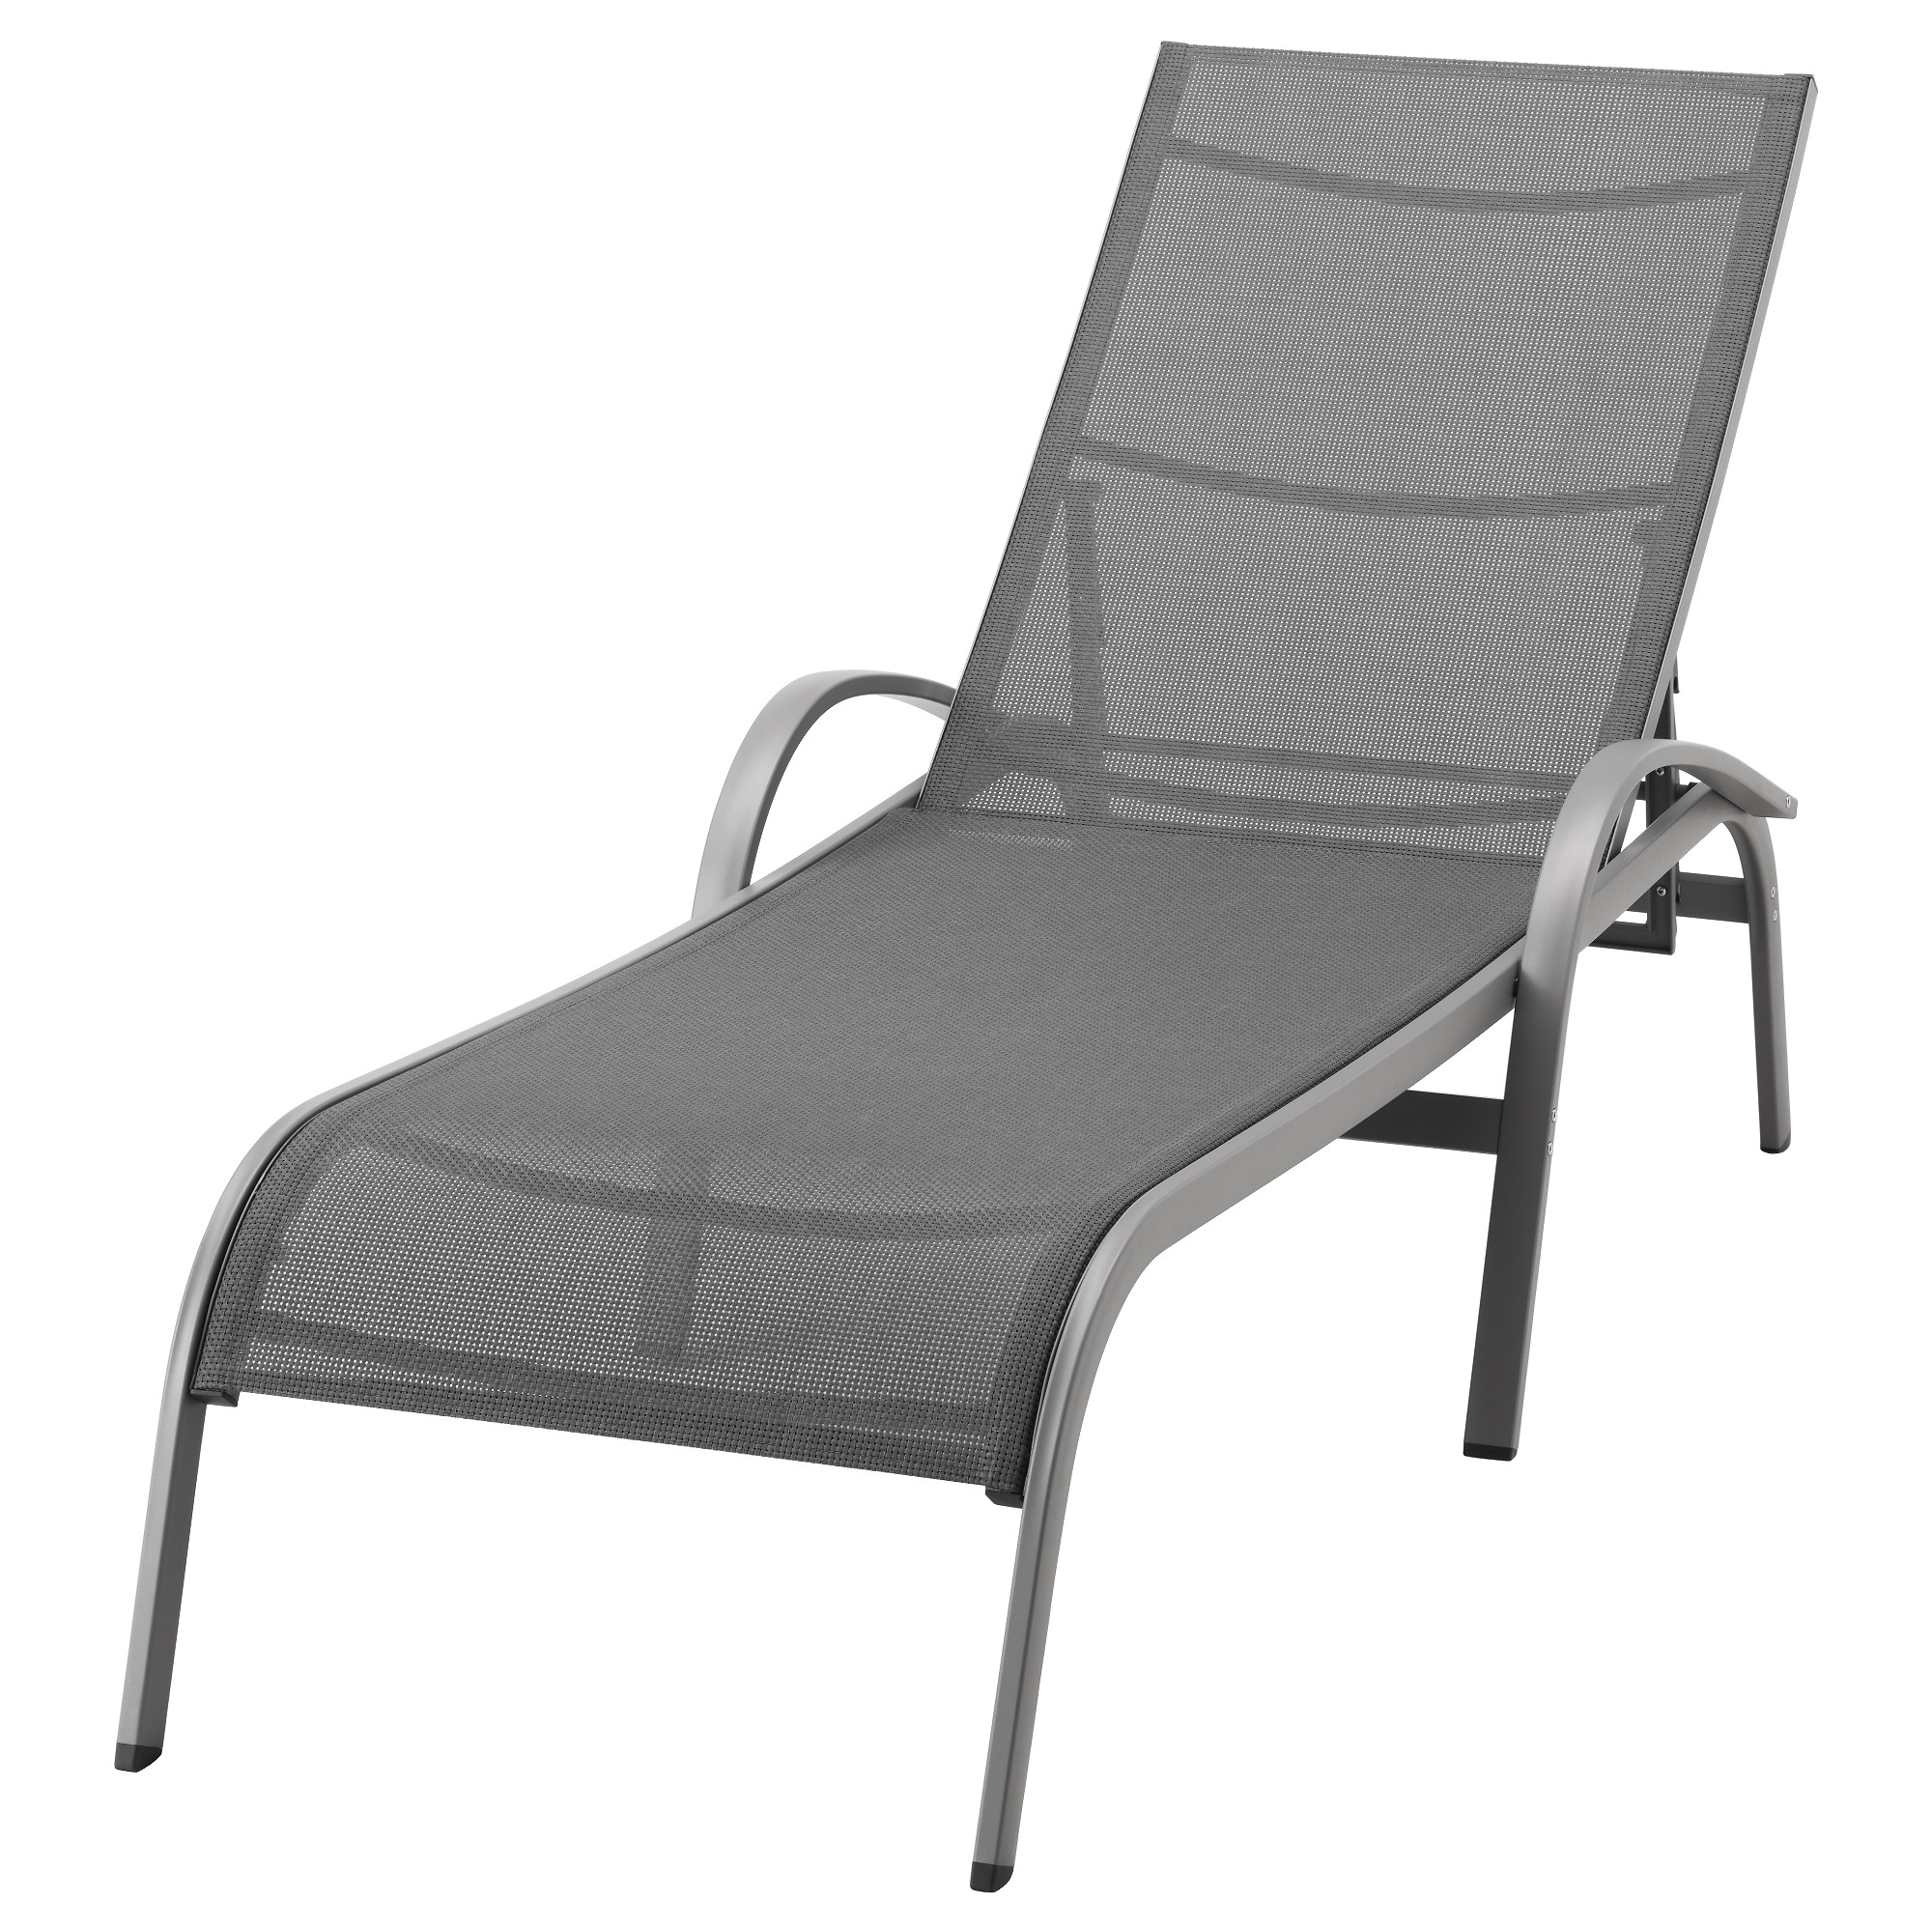 Lounging & relaxing furniture Chaises & hammocks IKEA